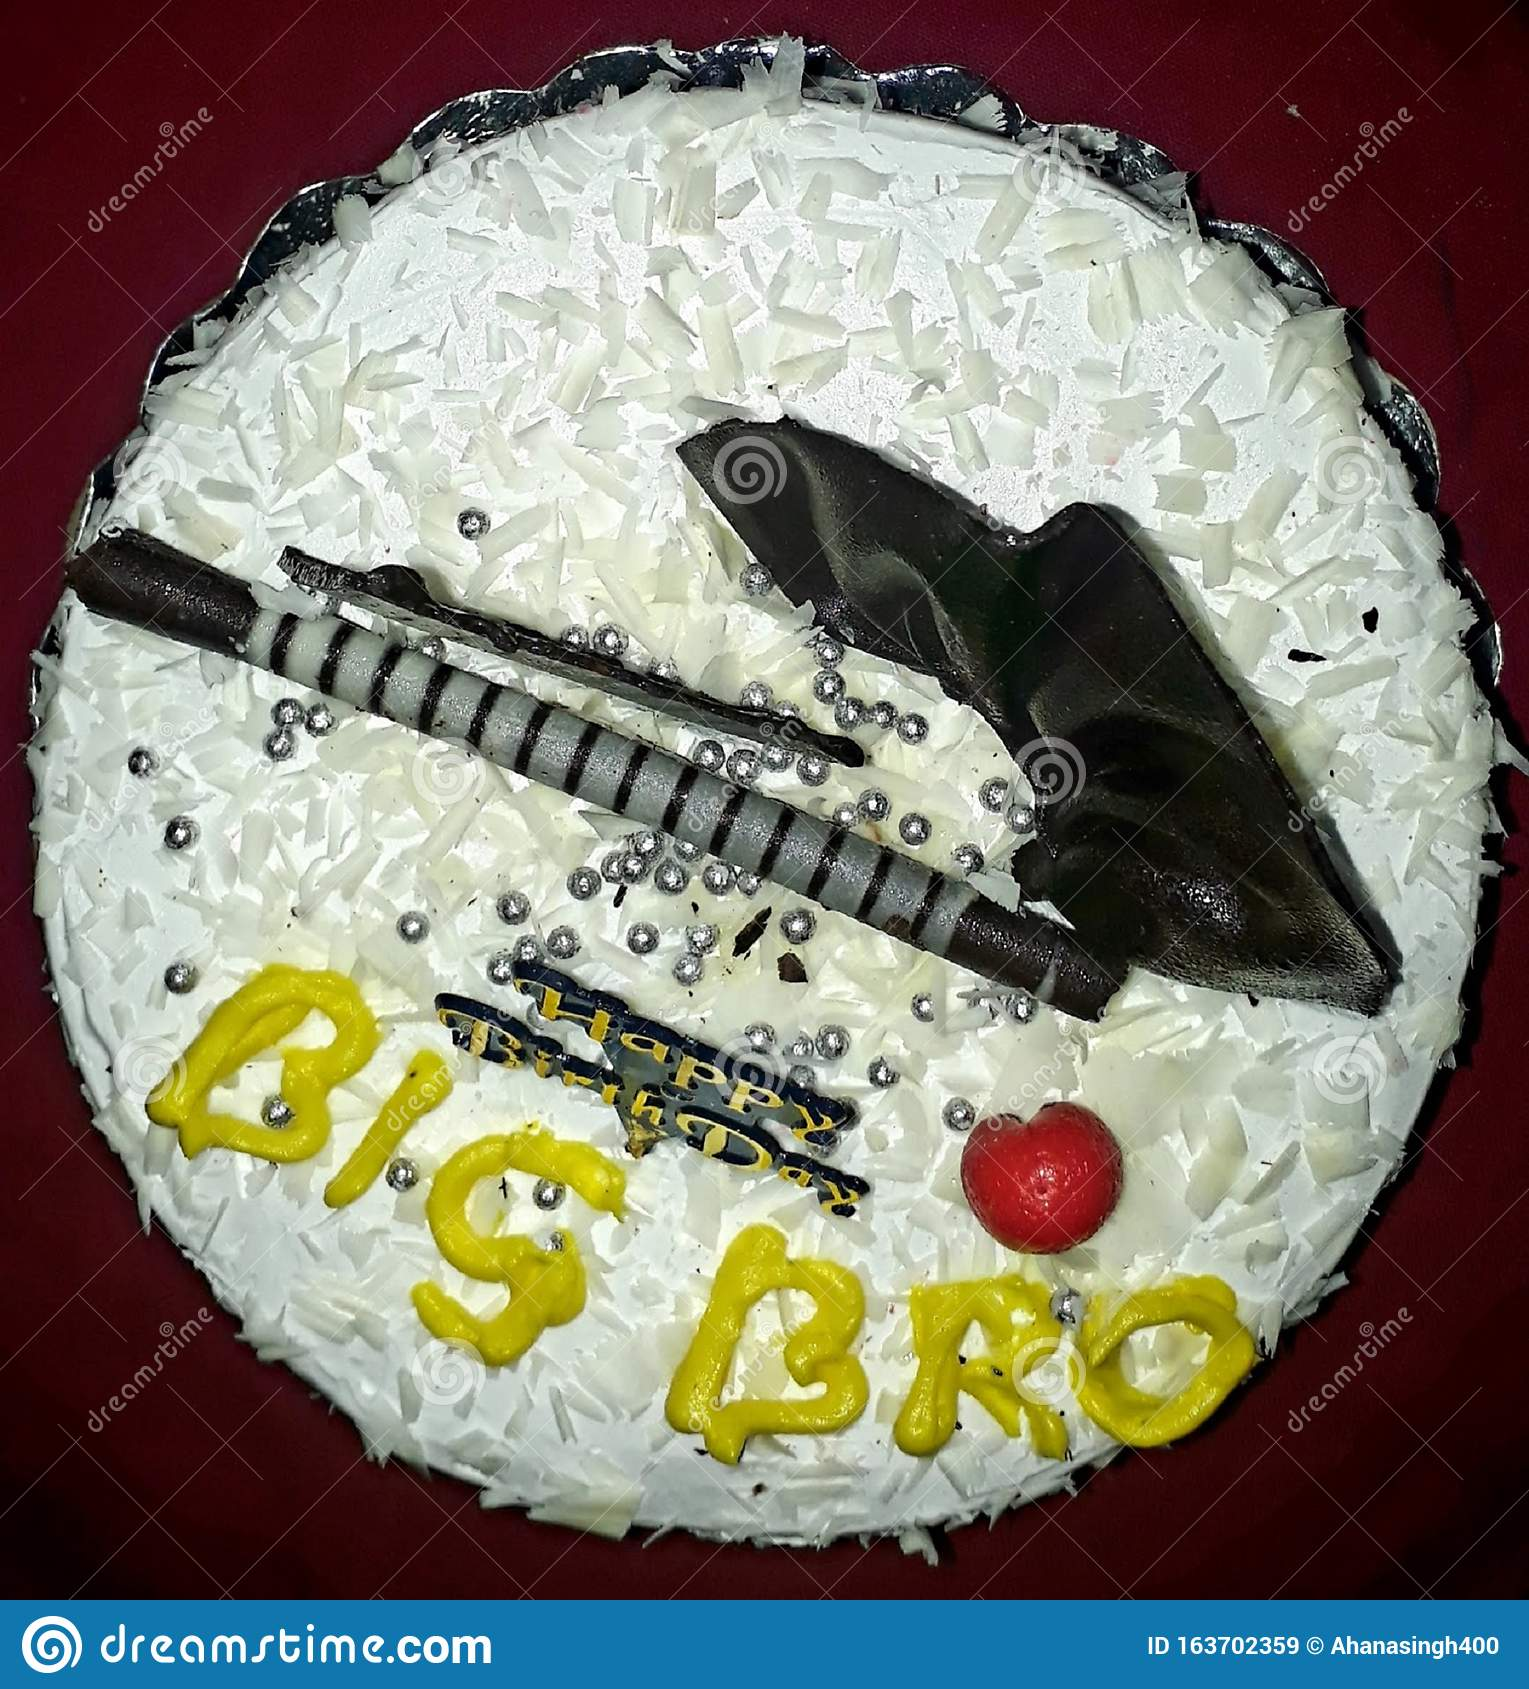 Tremendous Big Bro White Forest Birthday Cake Best Wishes With Chocklate And Funny Birthday Cards Online Alyptdamsfinfo